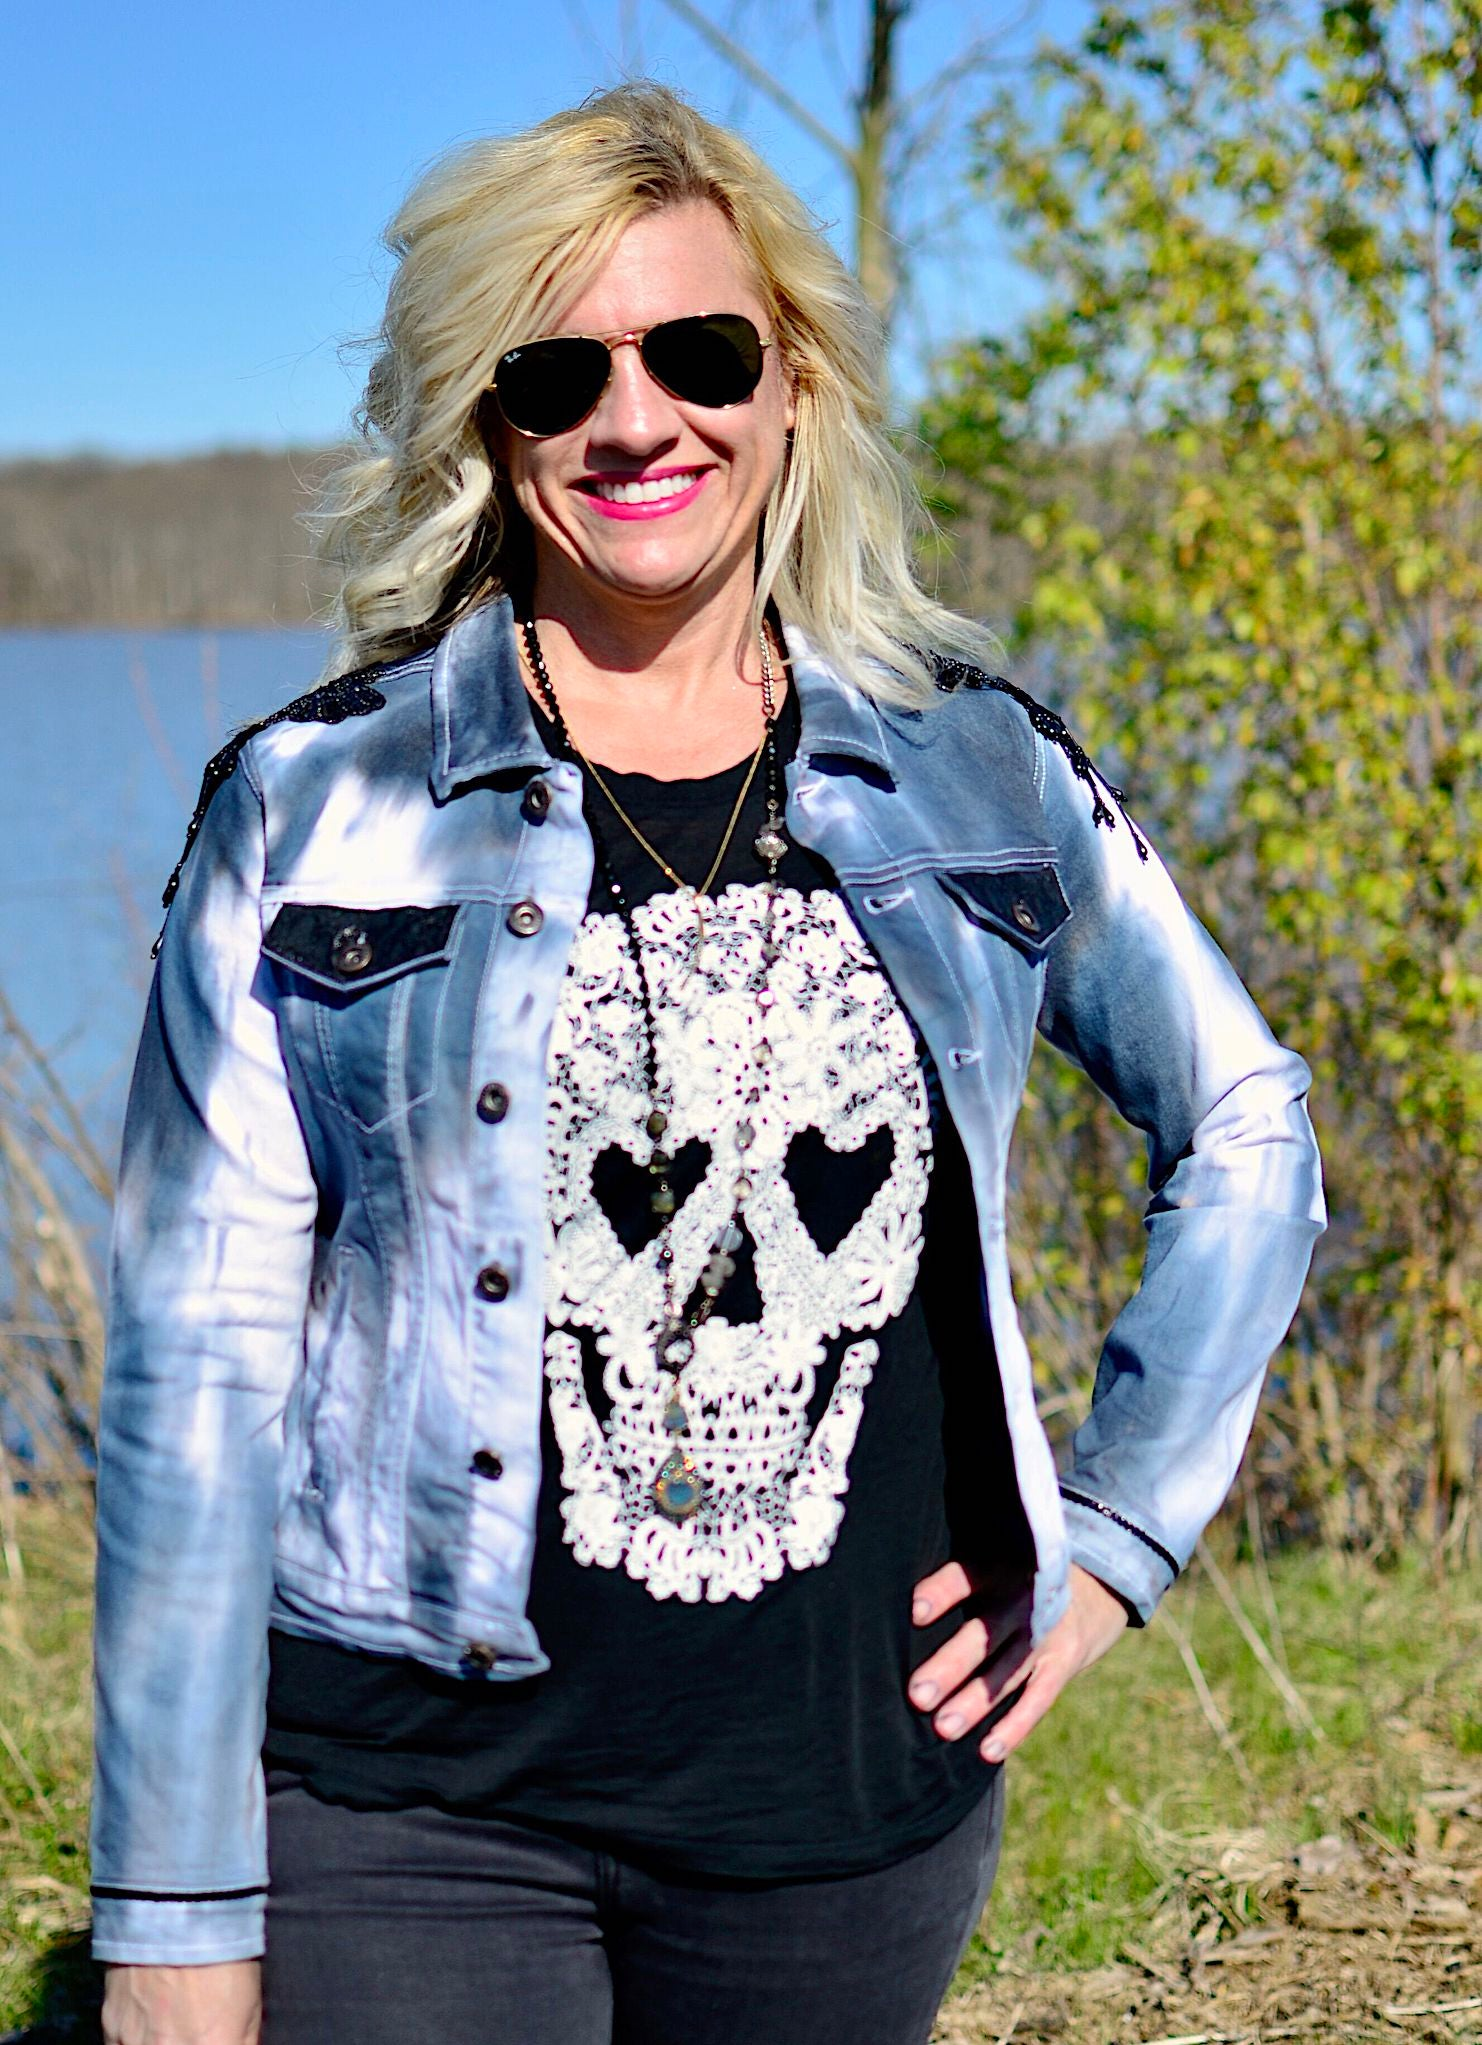 Black and White Hand-Dyed Denim Jacket